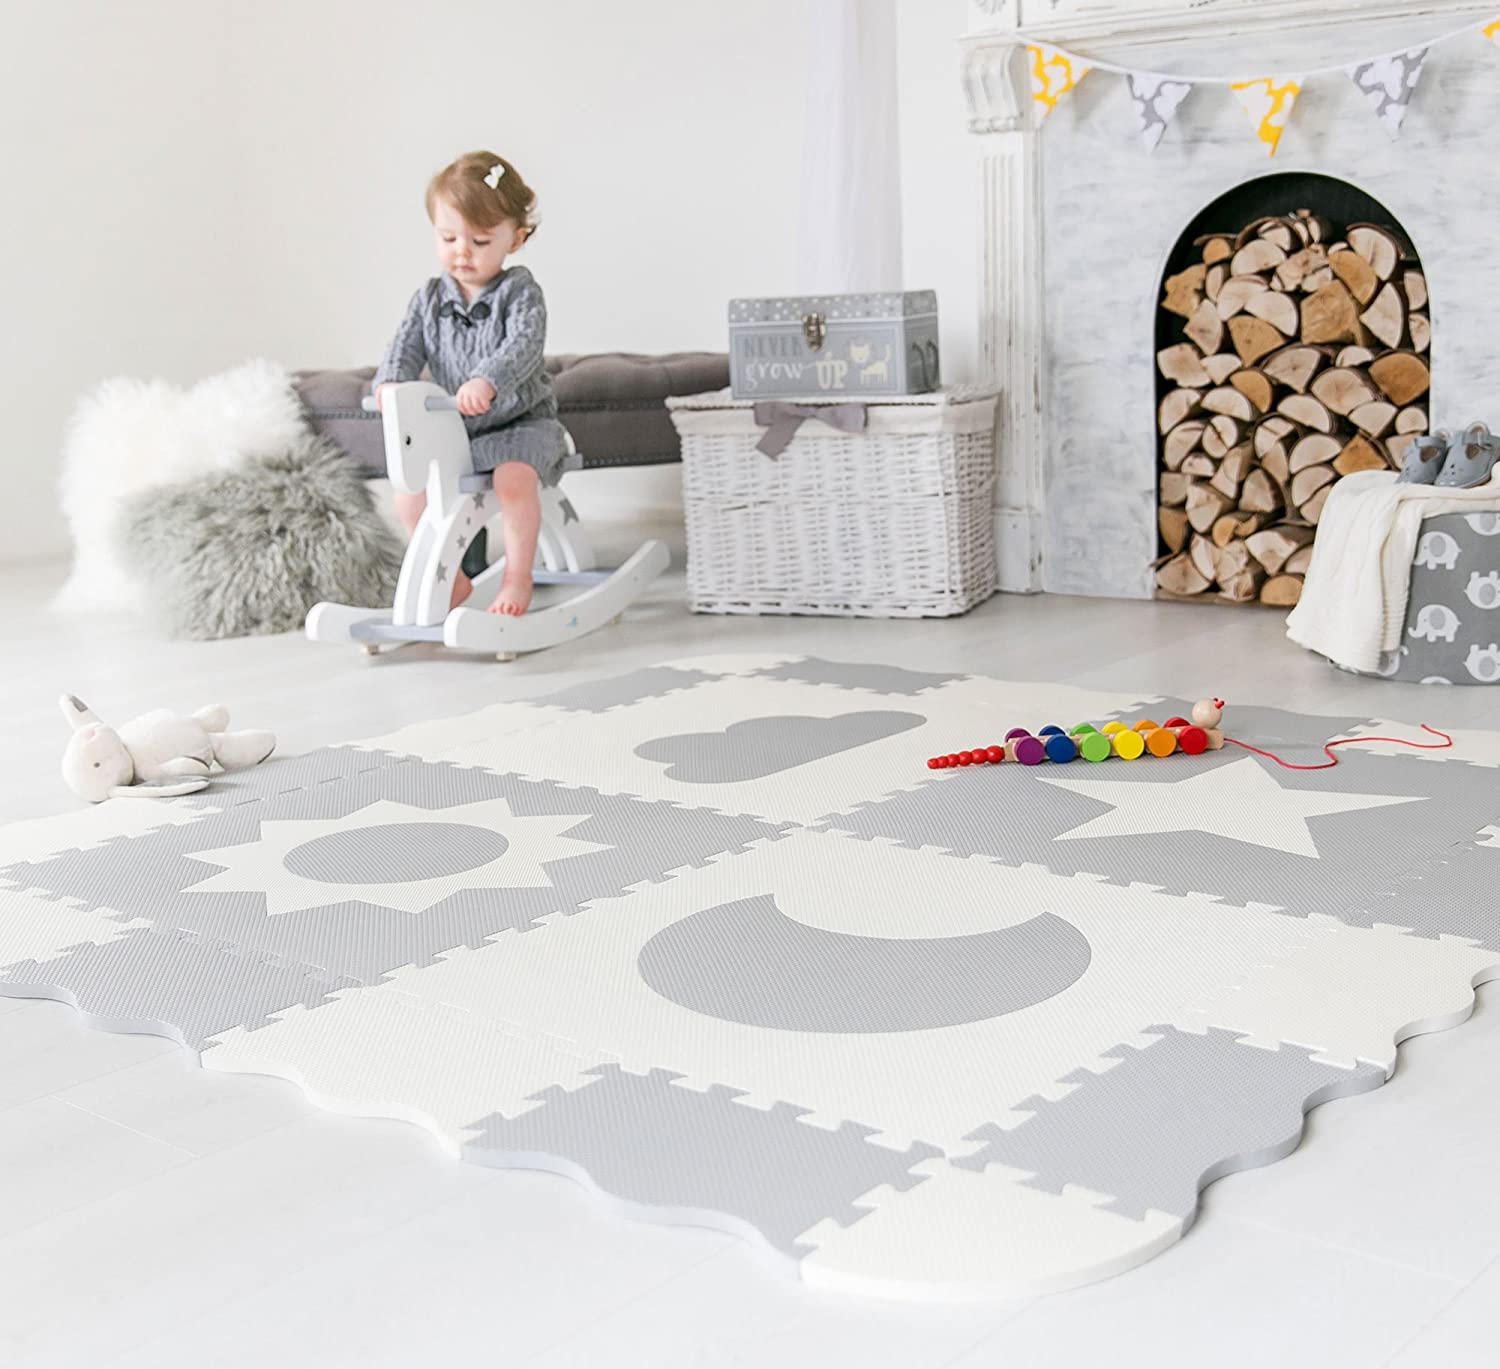 Amazon interlocking foam baby play mat tiles non toxic amazon interlocking foam baby play mat tiles non toxic extra large thick floor squares 61 x 61 unisex grey white playroom nursery mat dailygadgetfo Choice Image